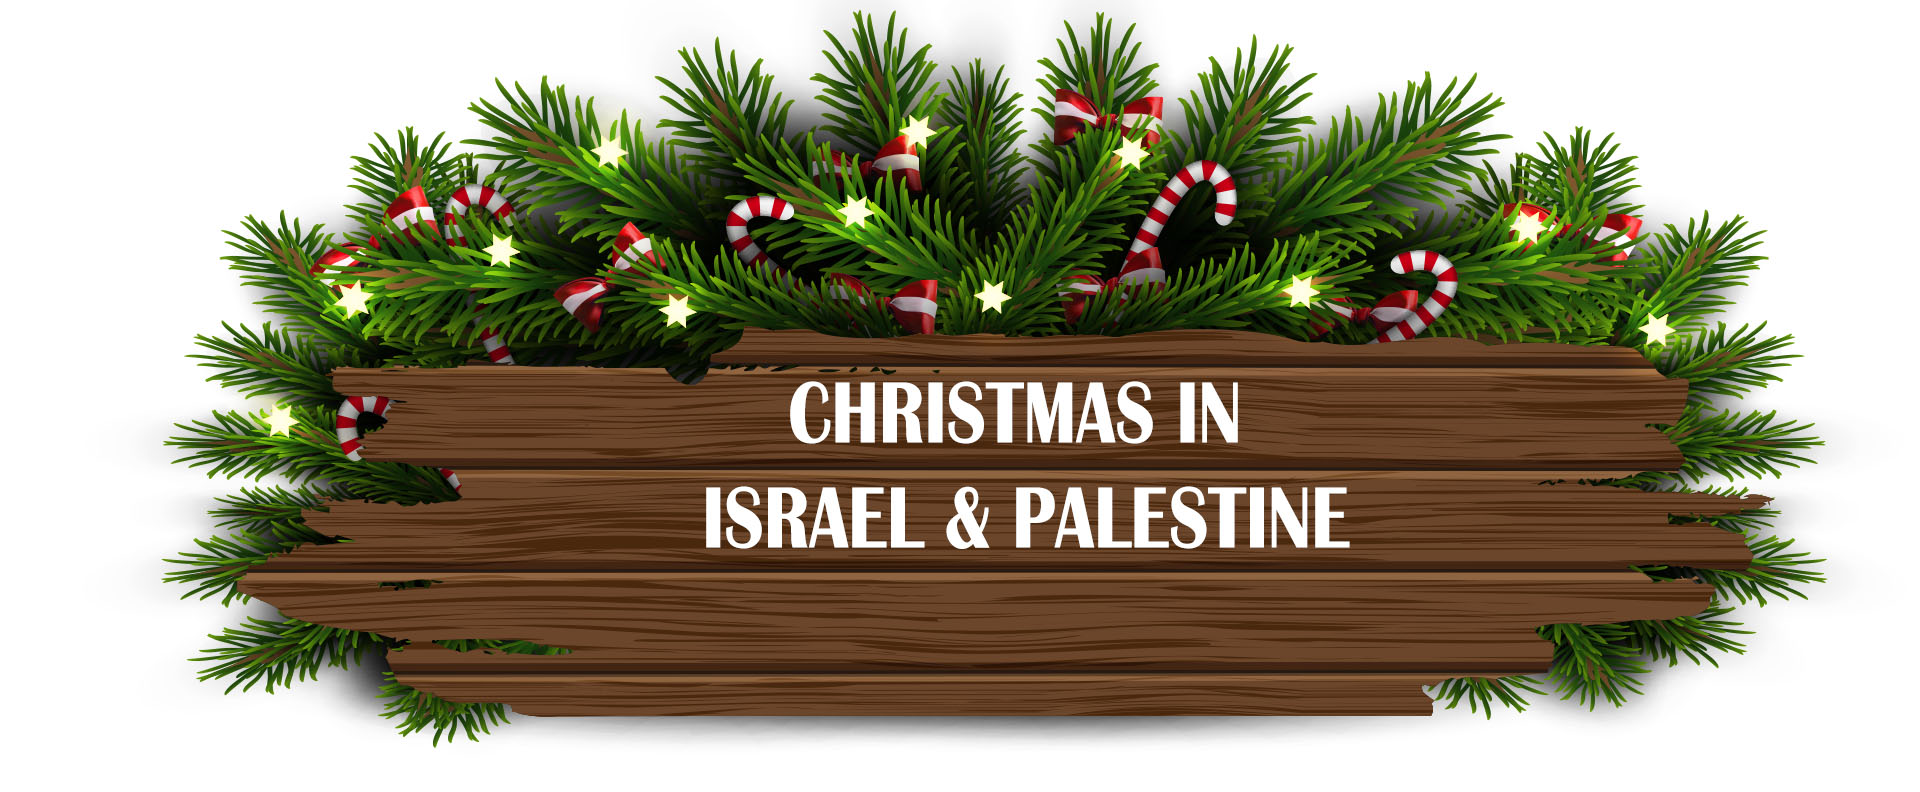 Christmas in Israel and Palestine